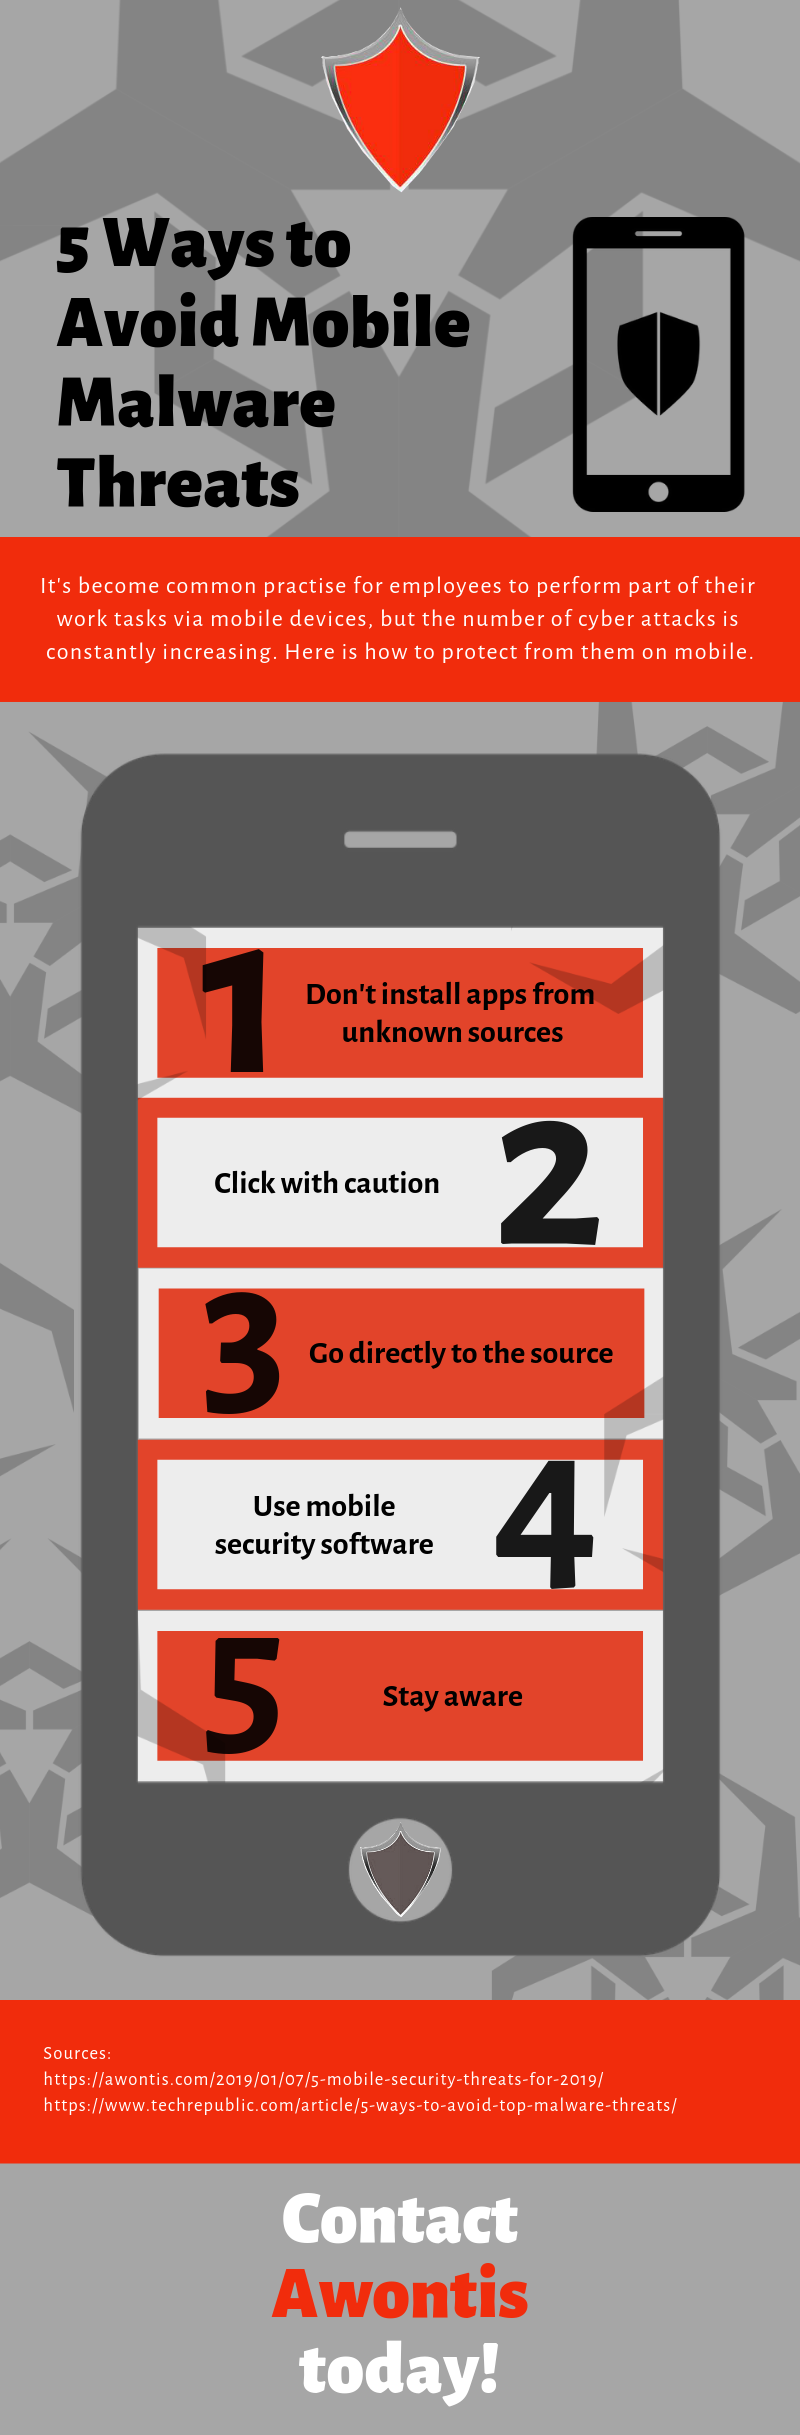 5 Ways to Avoid Mobile Malware Threats INFOGRAPHIC